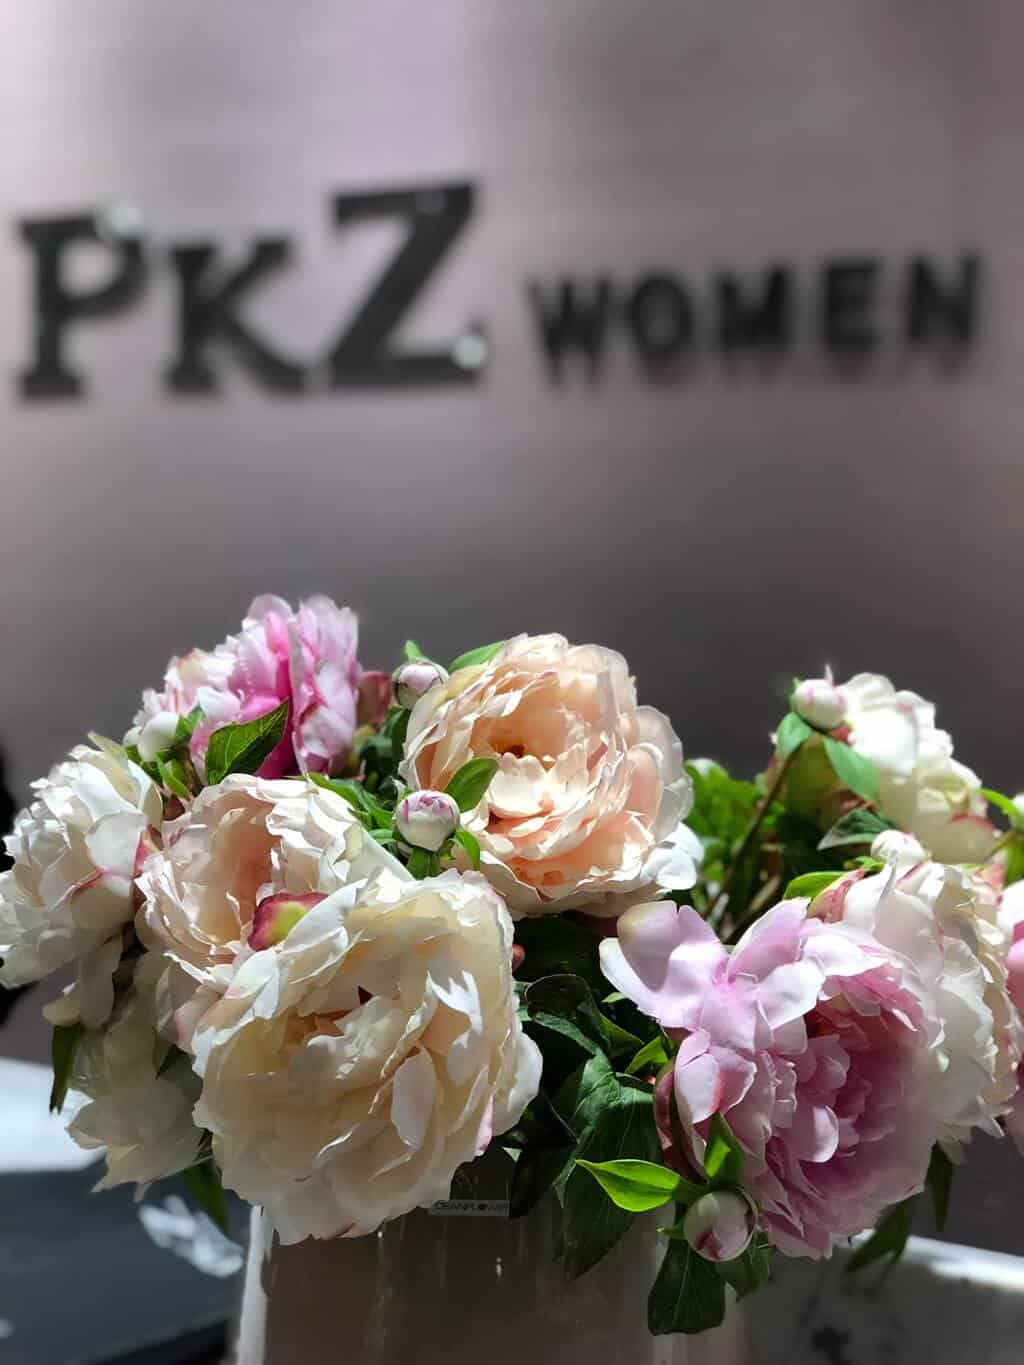 PKZ Fashion Night Zurich Autumn 2019